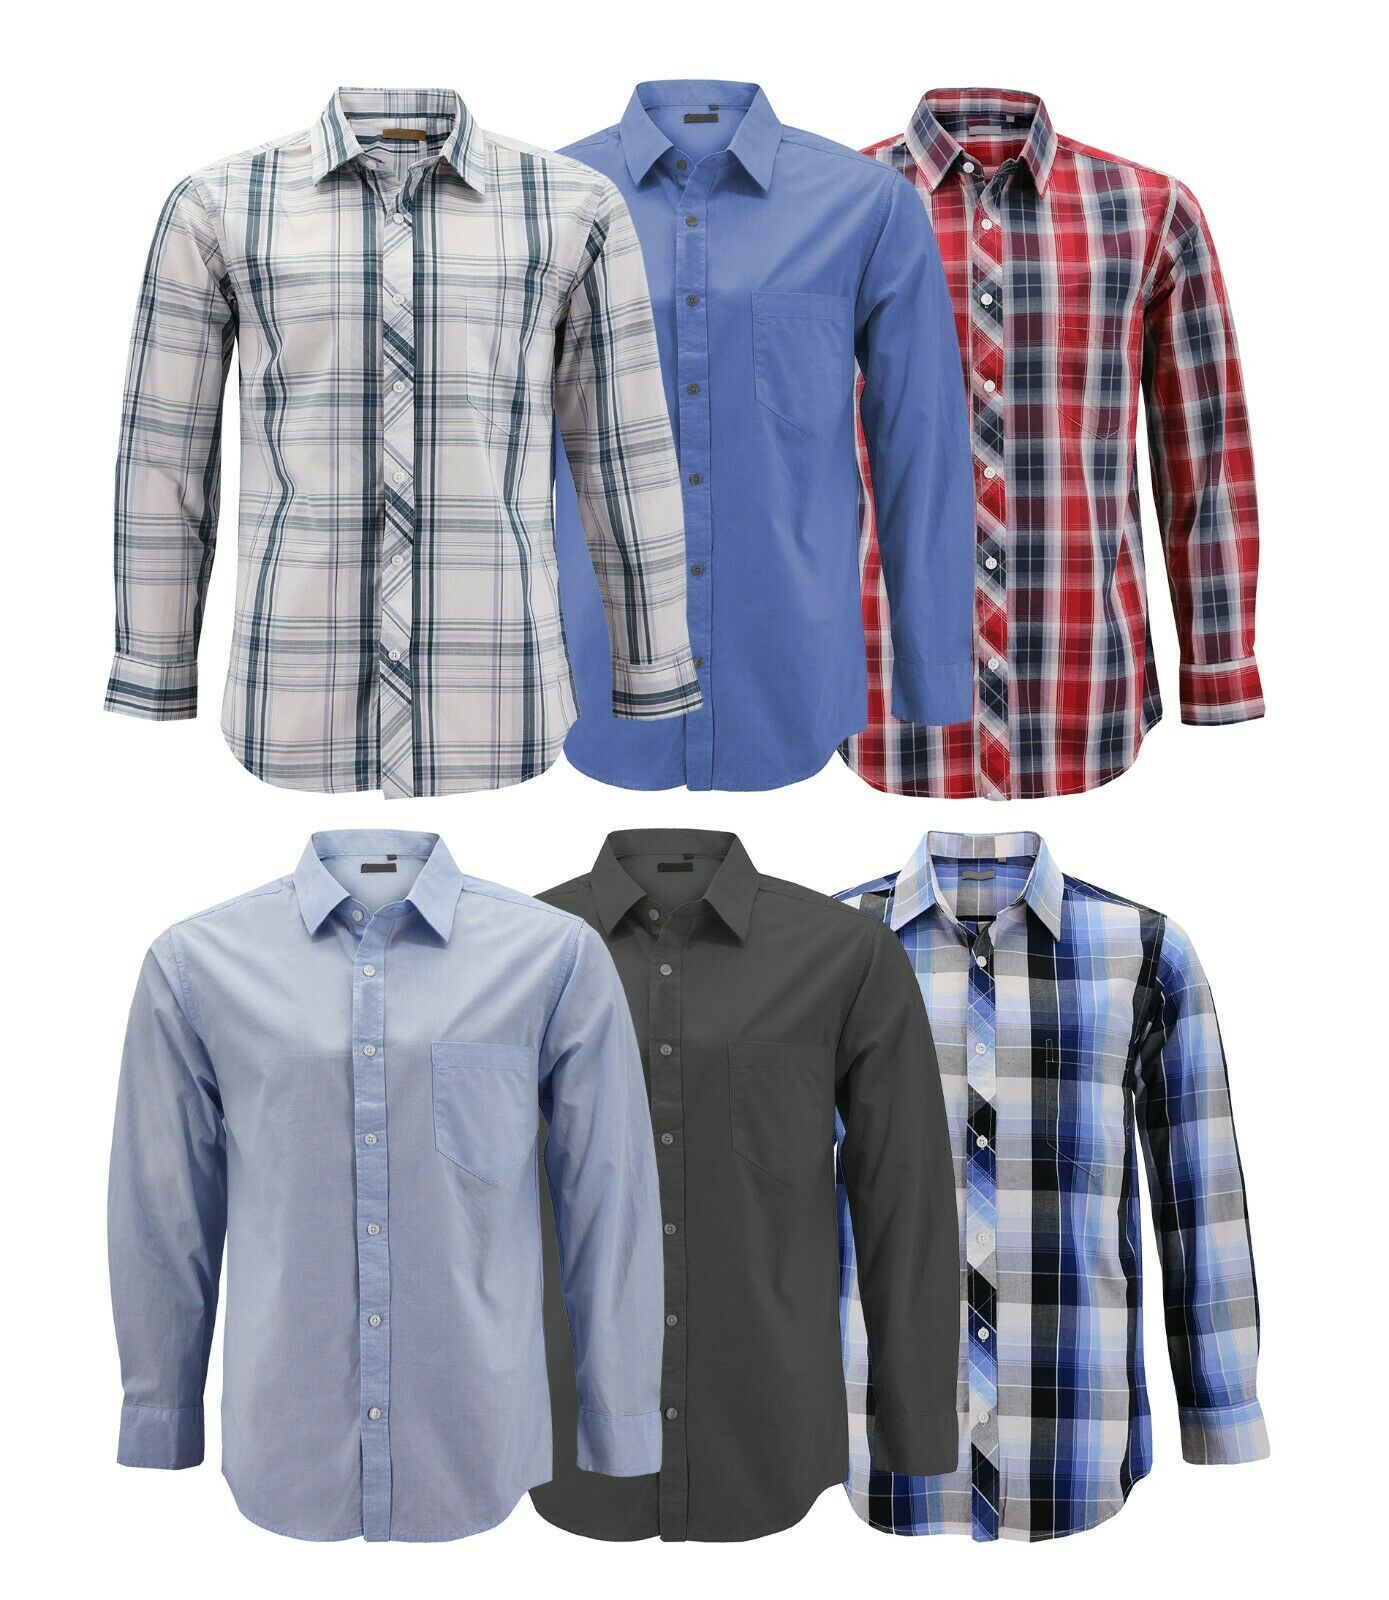 Men's Cotton Casual Long Sleeve Classic Collared Plaid Button Up Dress Shirt